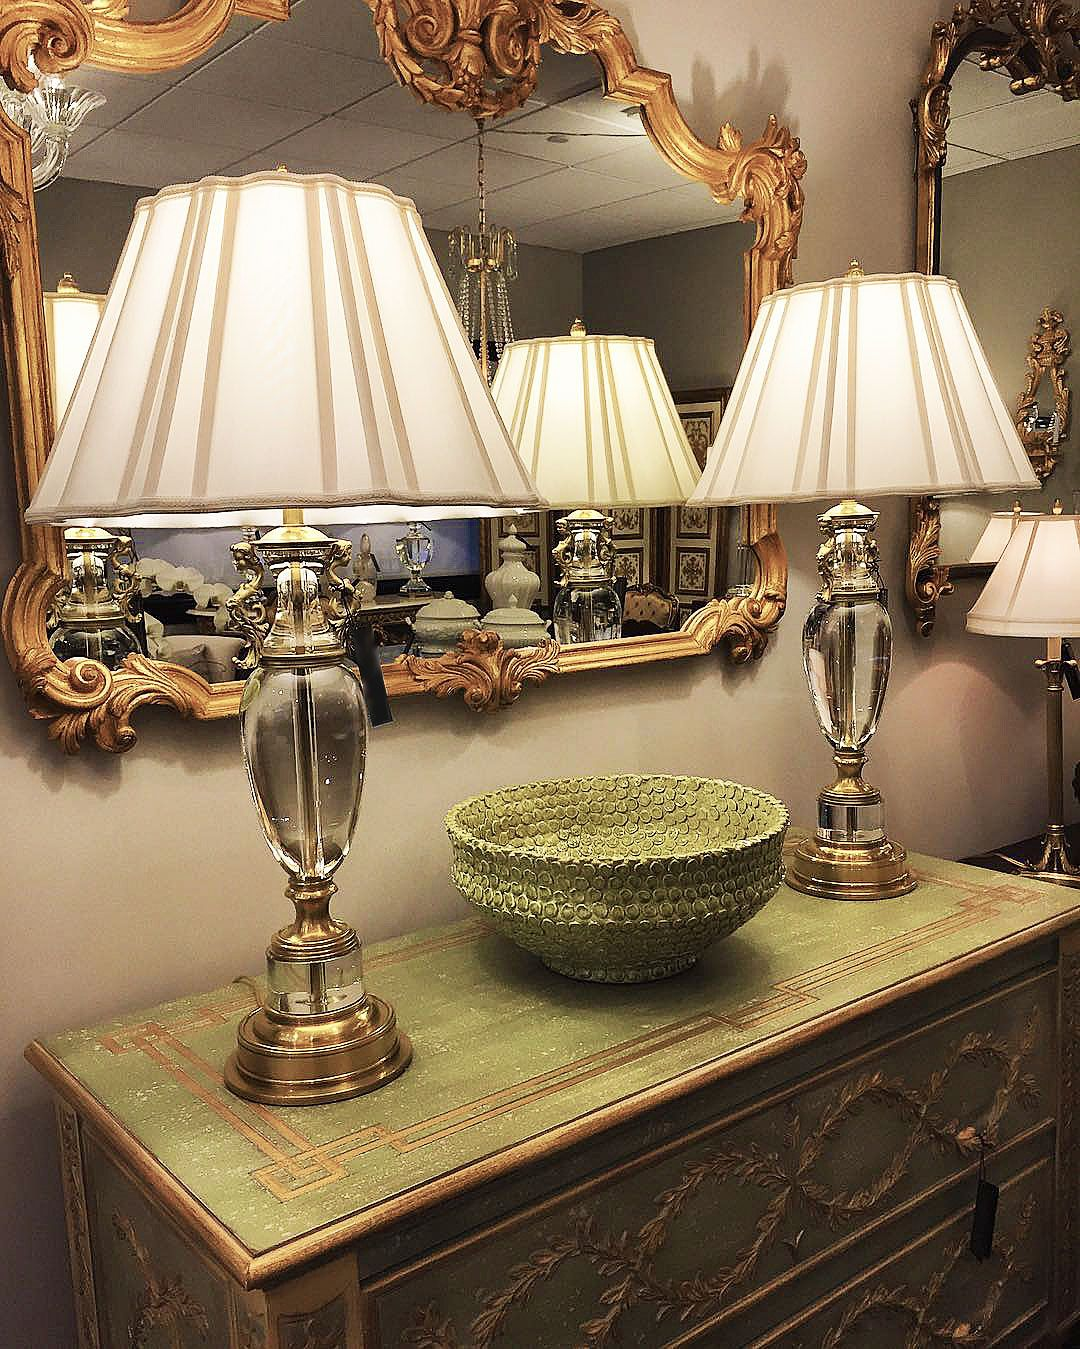 Showroom Setting Featuring Tuscan Style Mirror Pair Of Stunning Solid Crystal Lamps